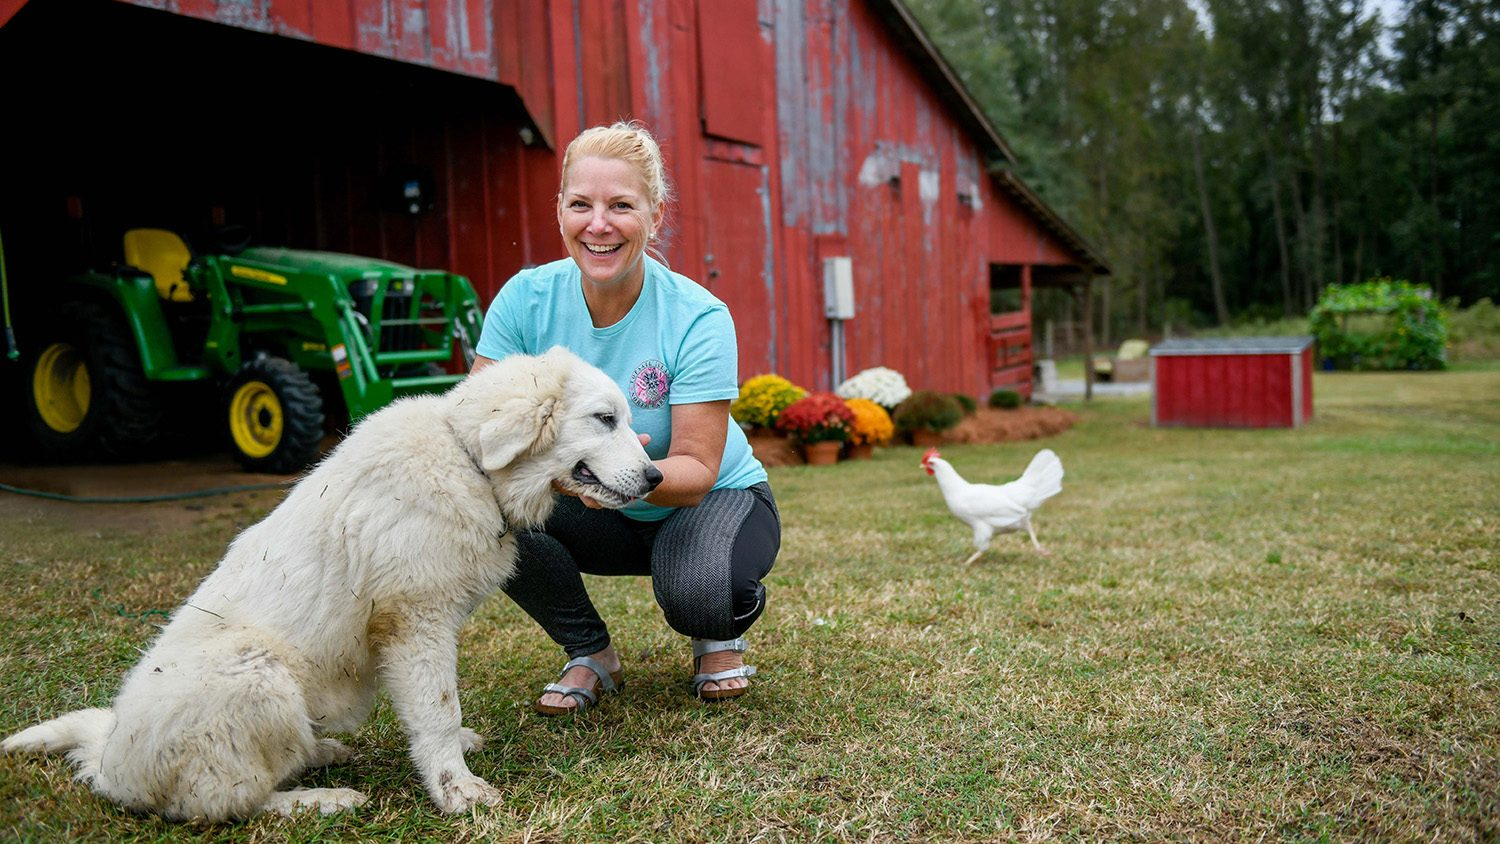 Woman smiling with her hand out to dog. In the background, a big red barn, tractor and chicken.